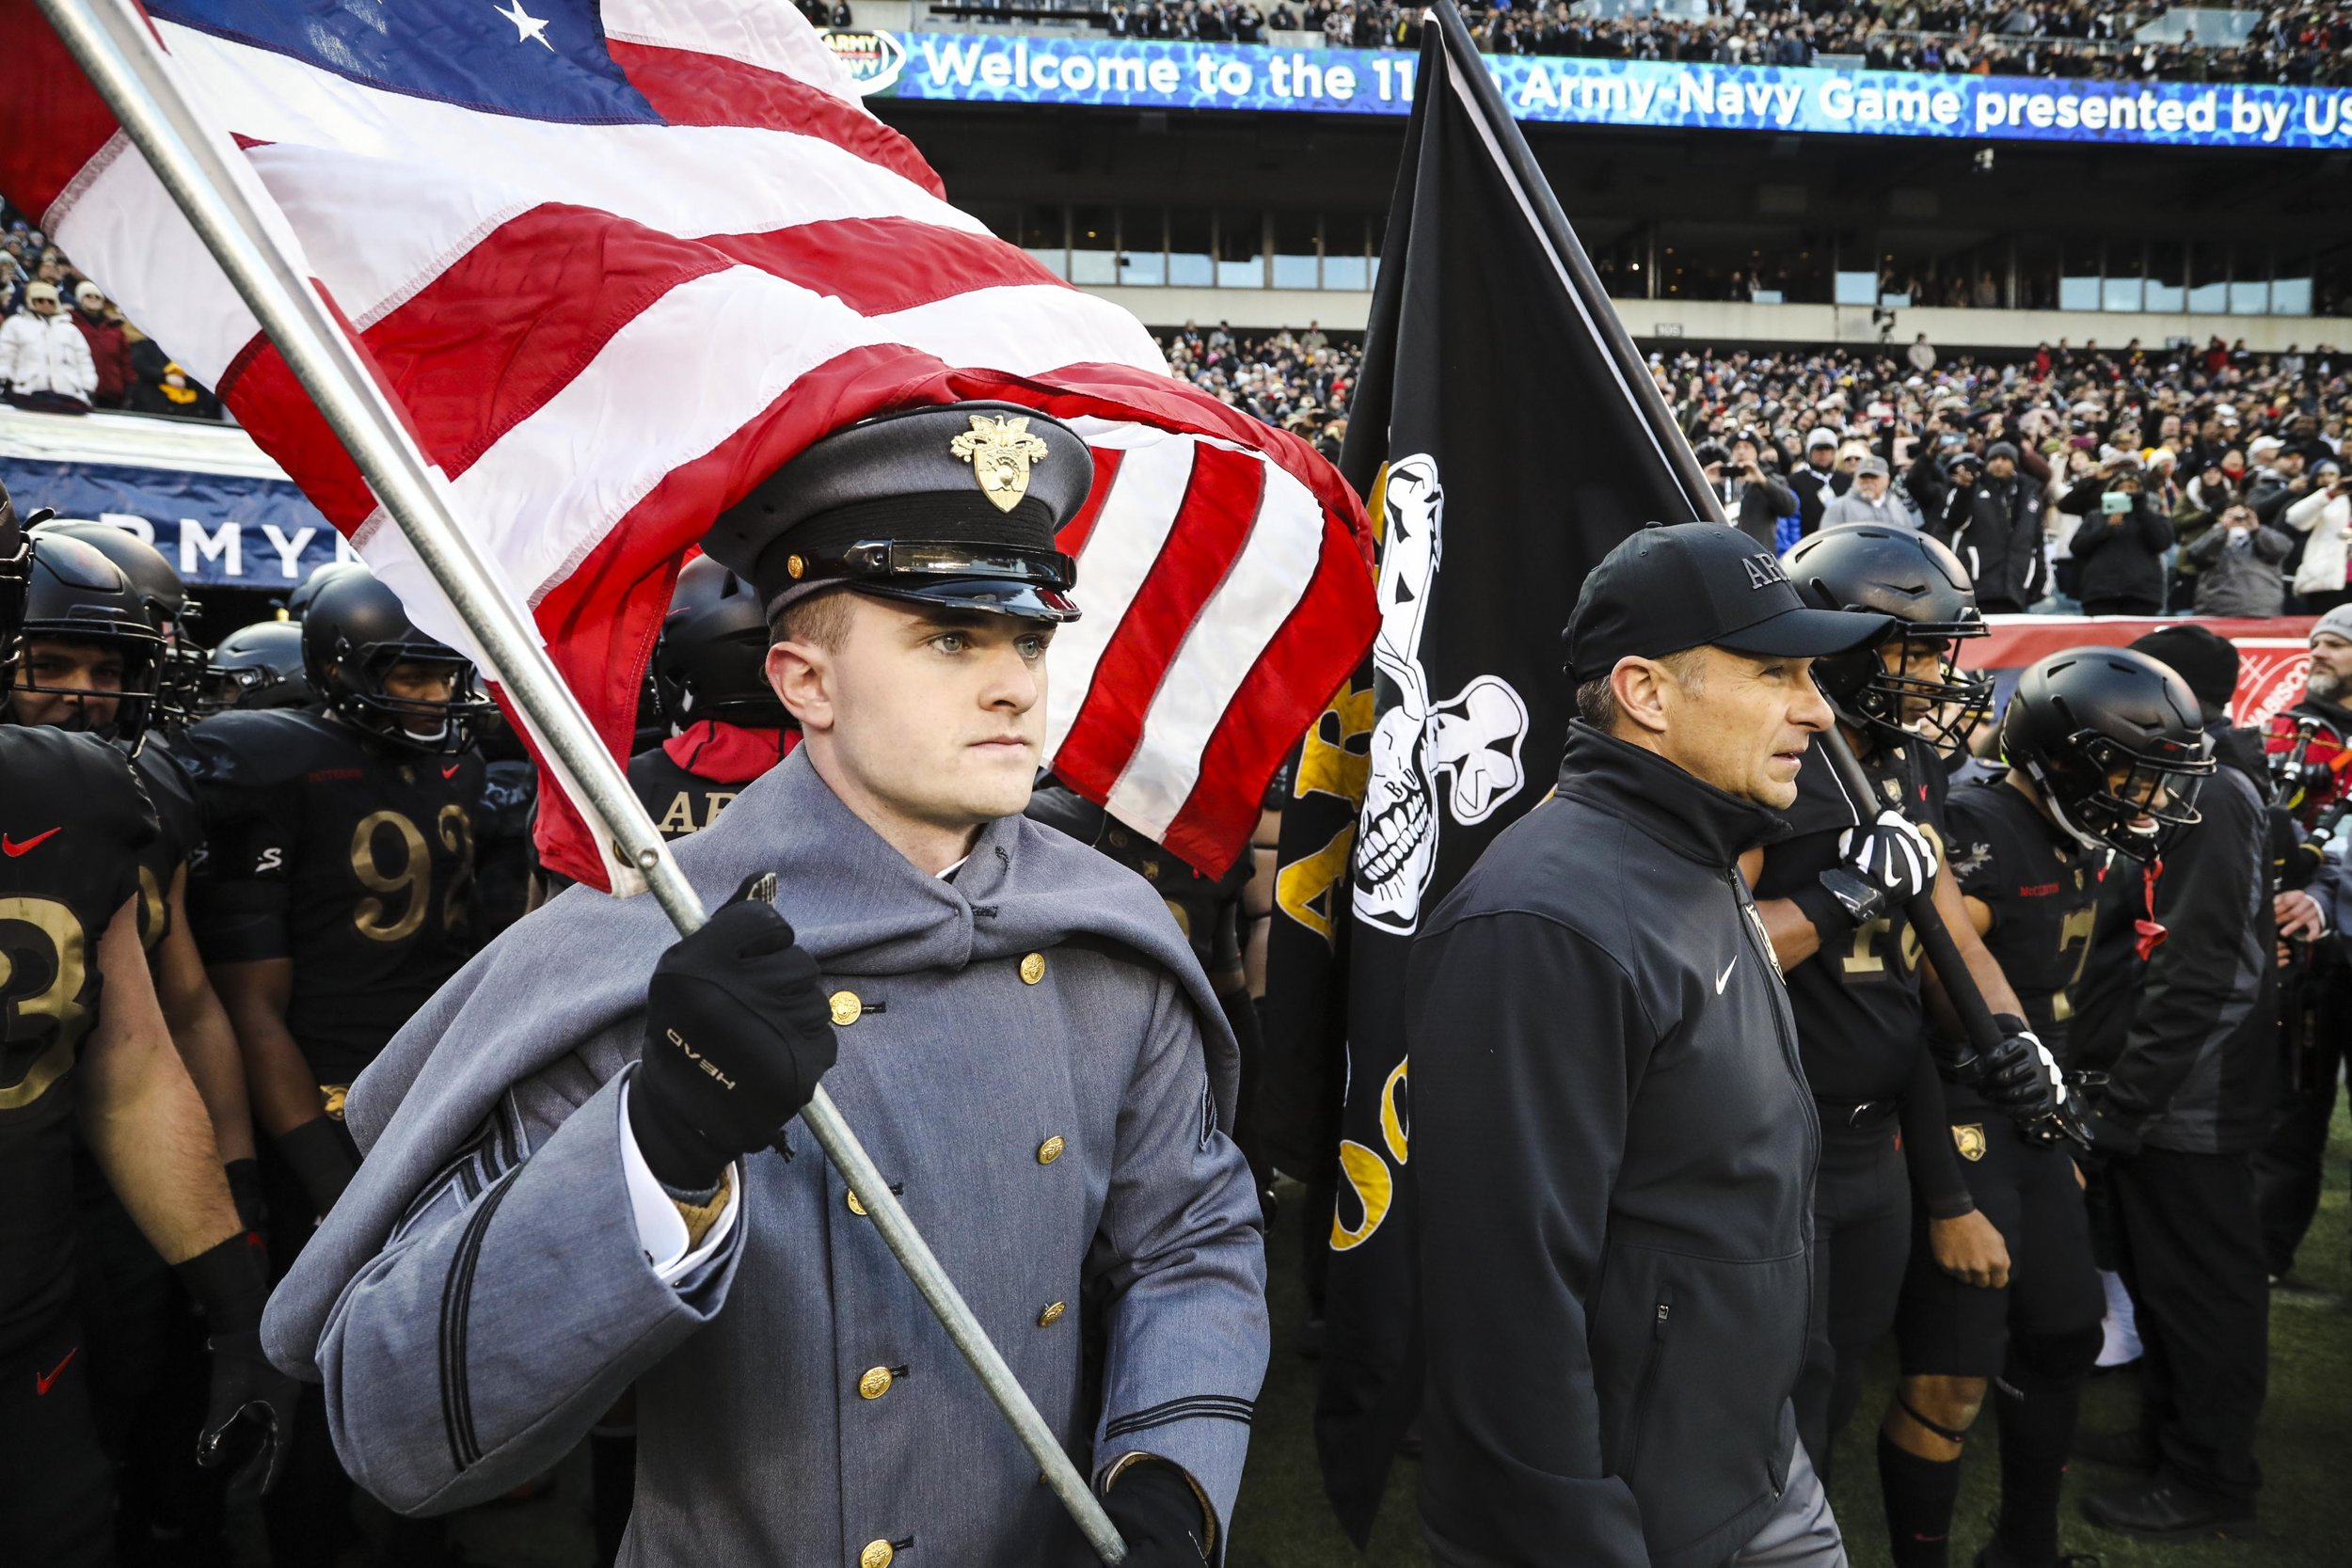 Army/Navy 2018 - Philadelphia, PA